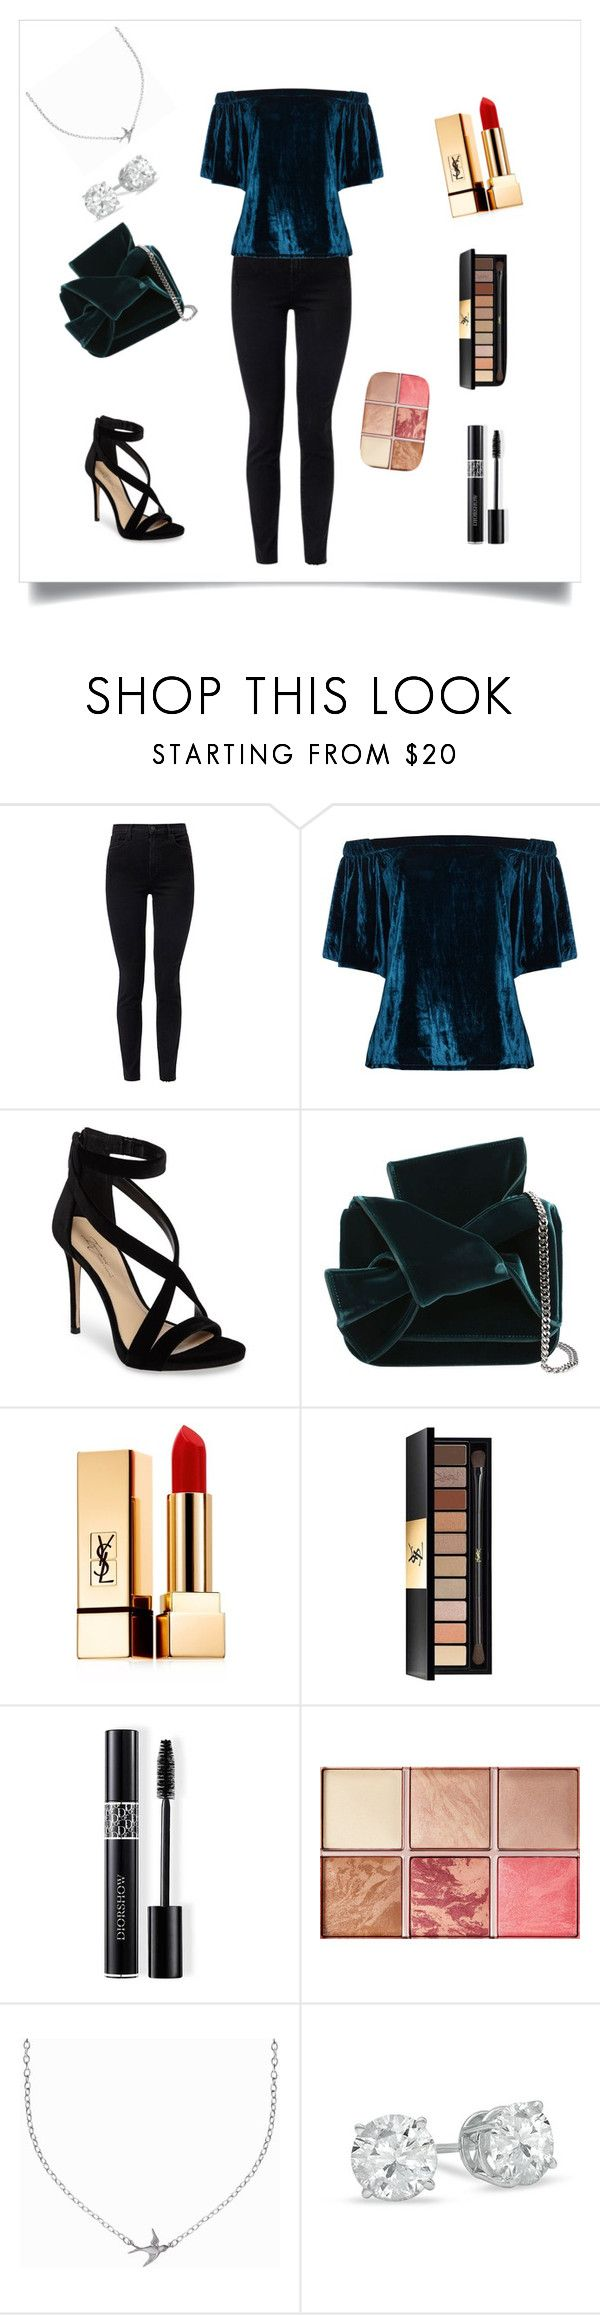 """Untitled #438"" by angel000 on Polyvore featuring J Brand, Jelena Bin Drai, Imagine by Vince Camuto, N°21, Yves Saint Laurent, Christian Dior, Hourglass Cosmetics and Minnie Grace"